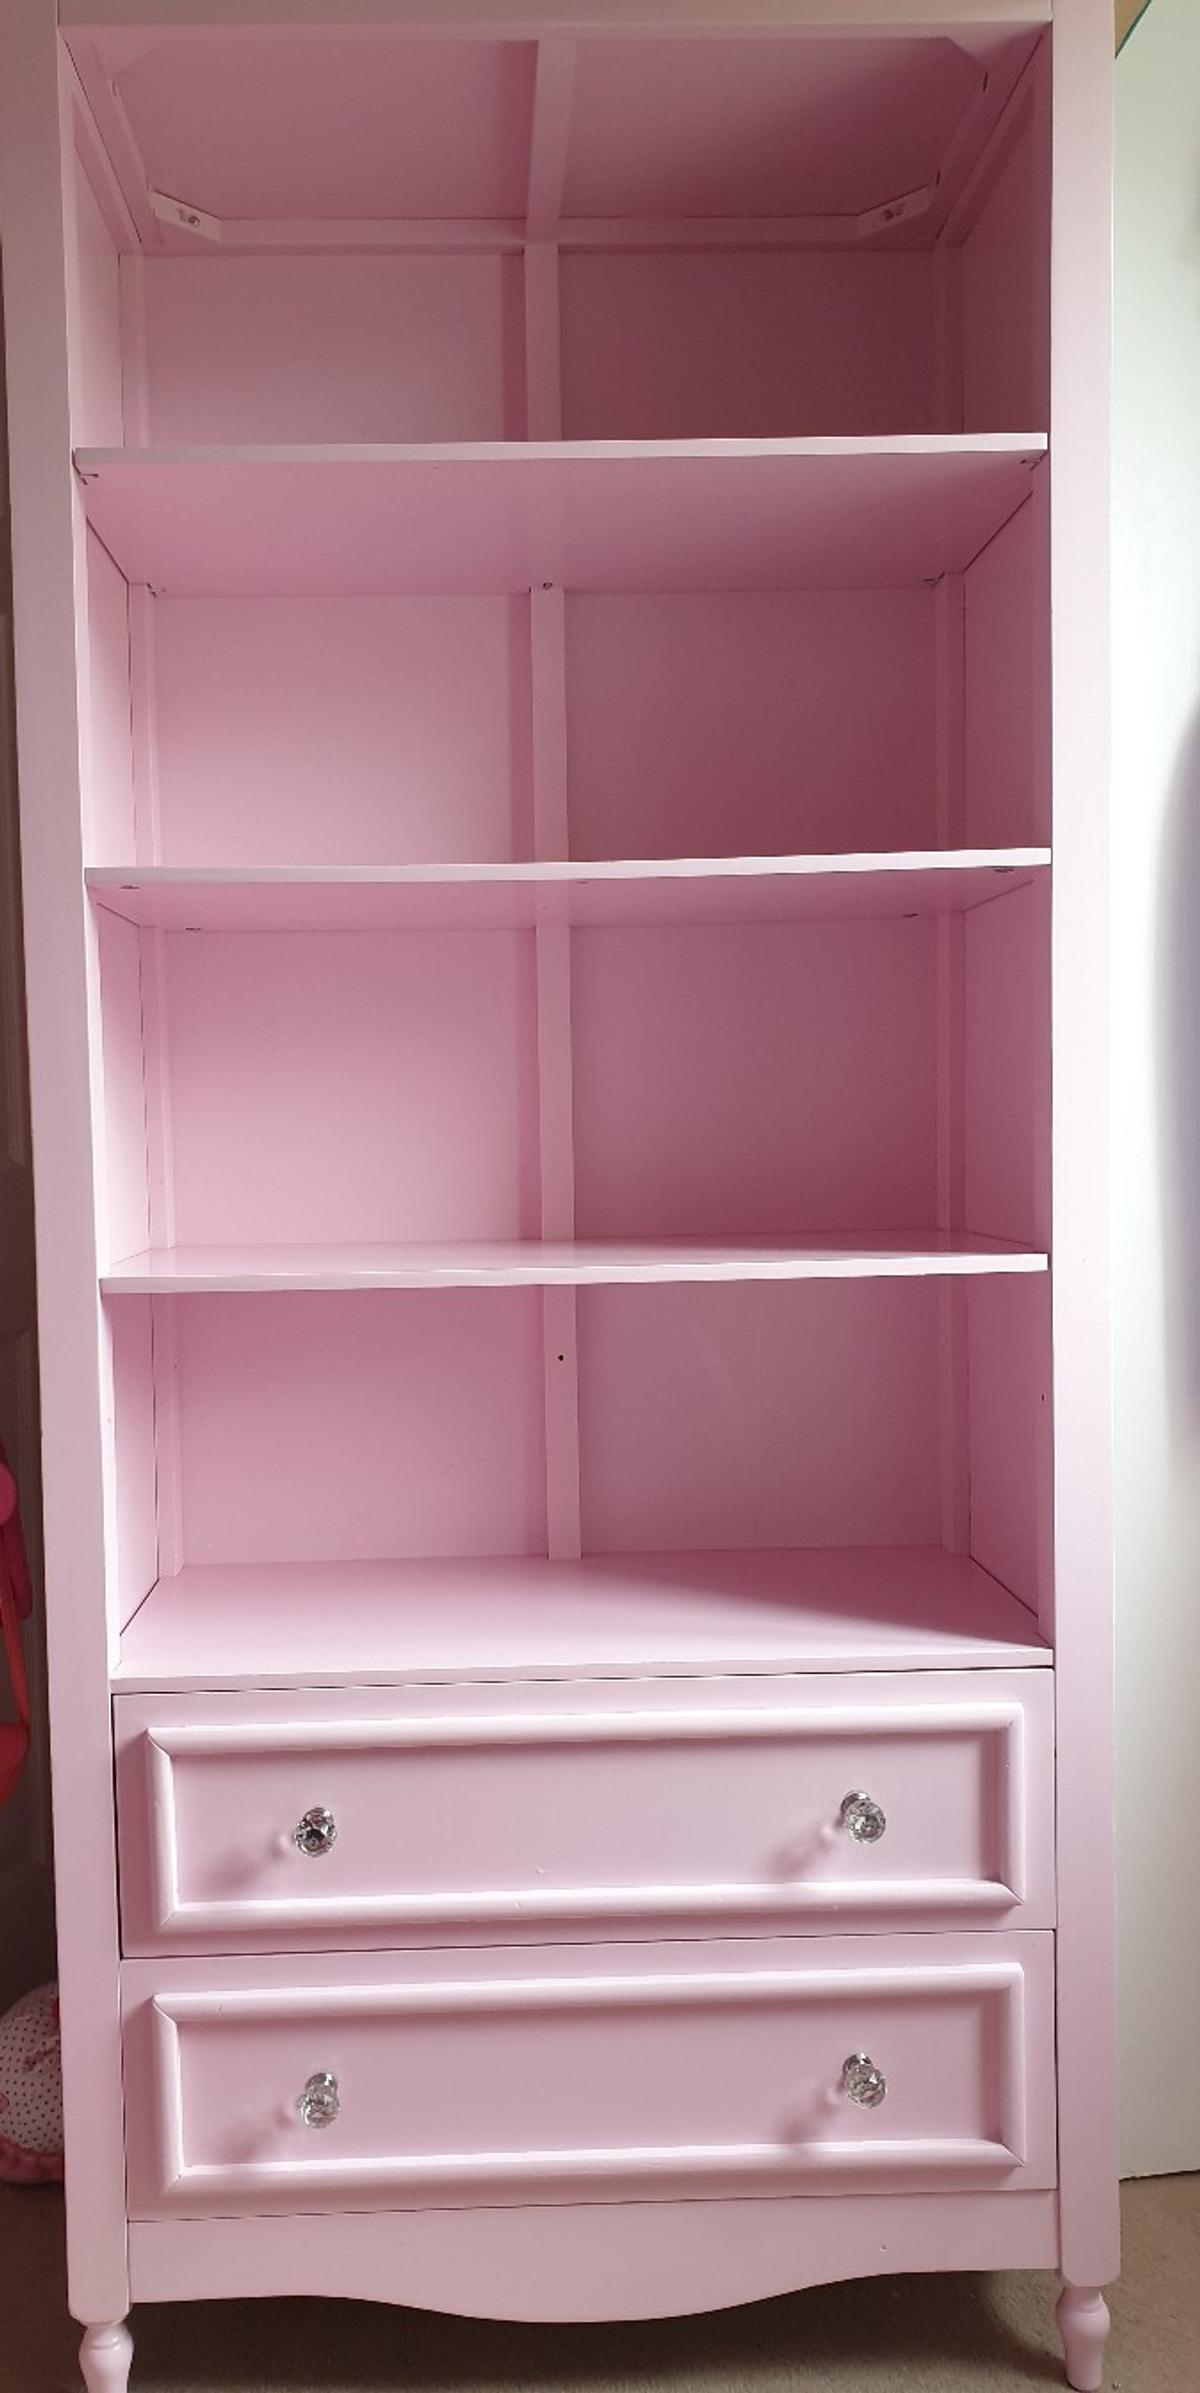 Tall Pink Bookcase Display Drawers 32 In S6 Sheffield For